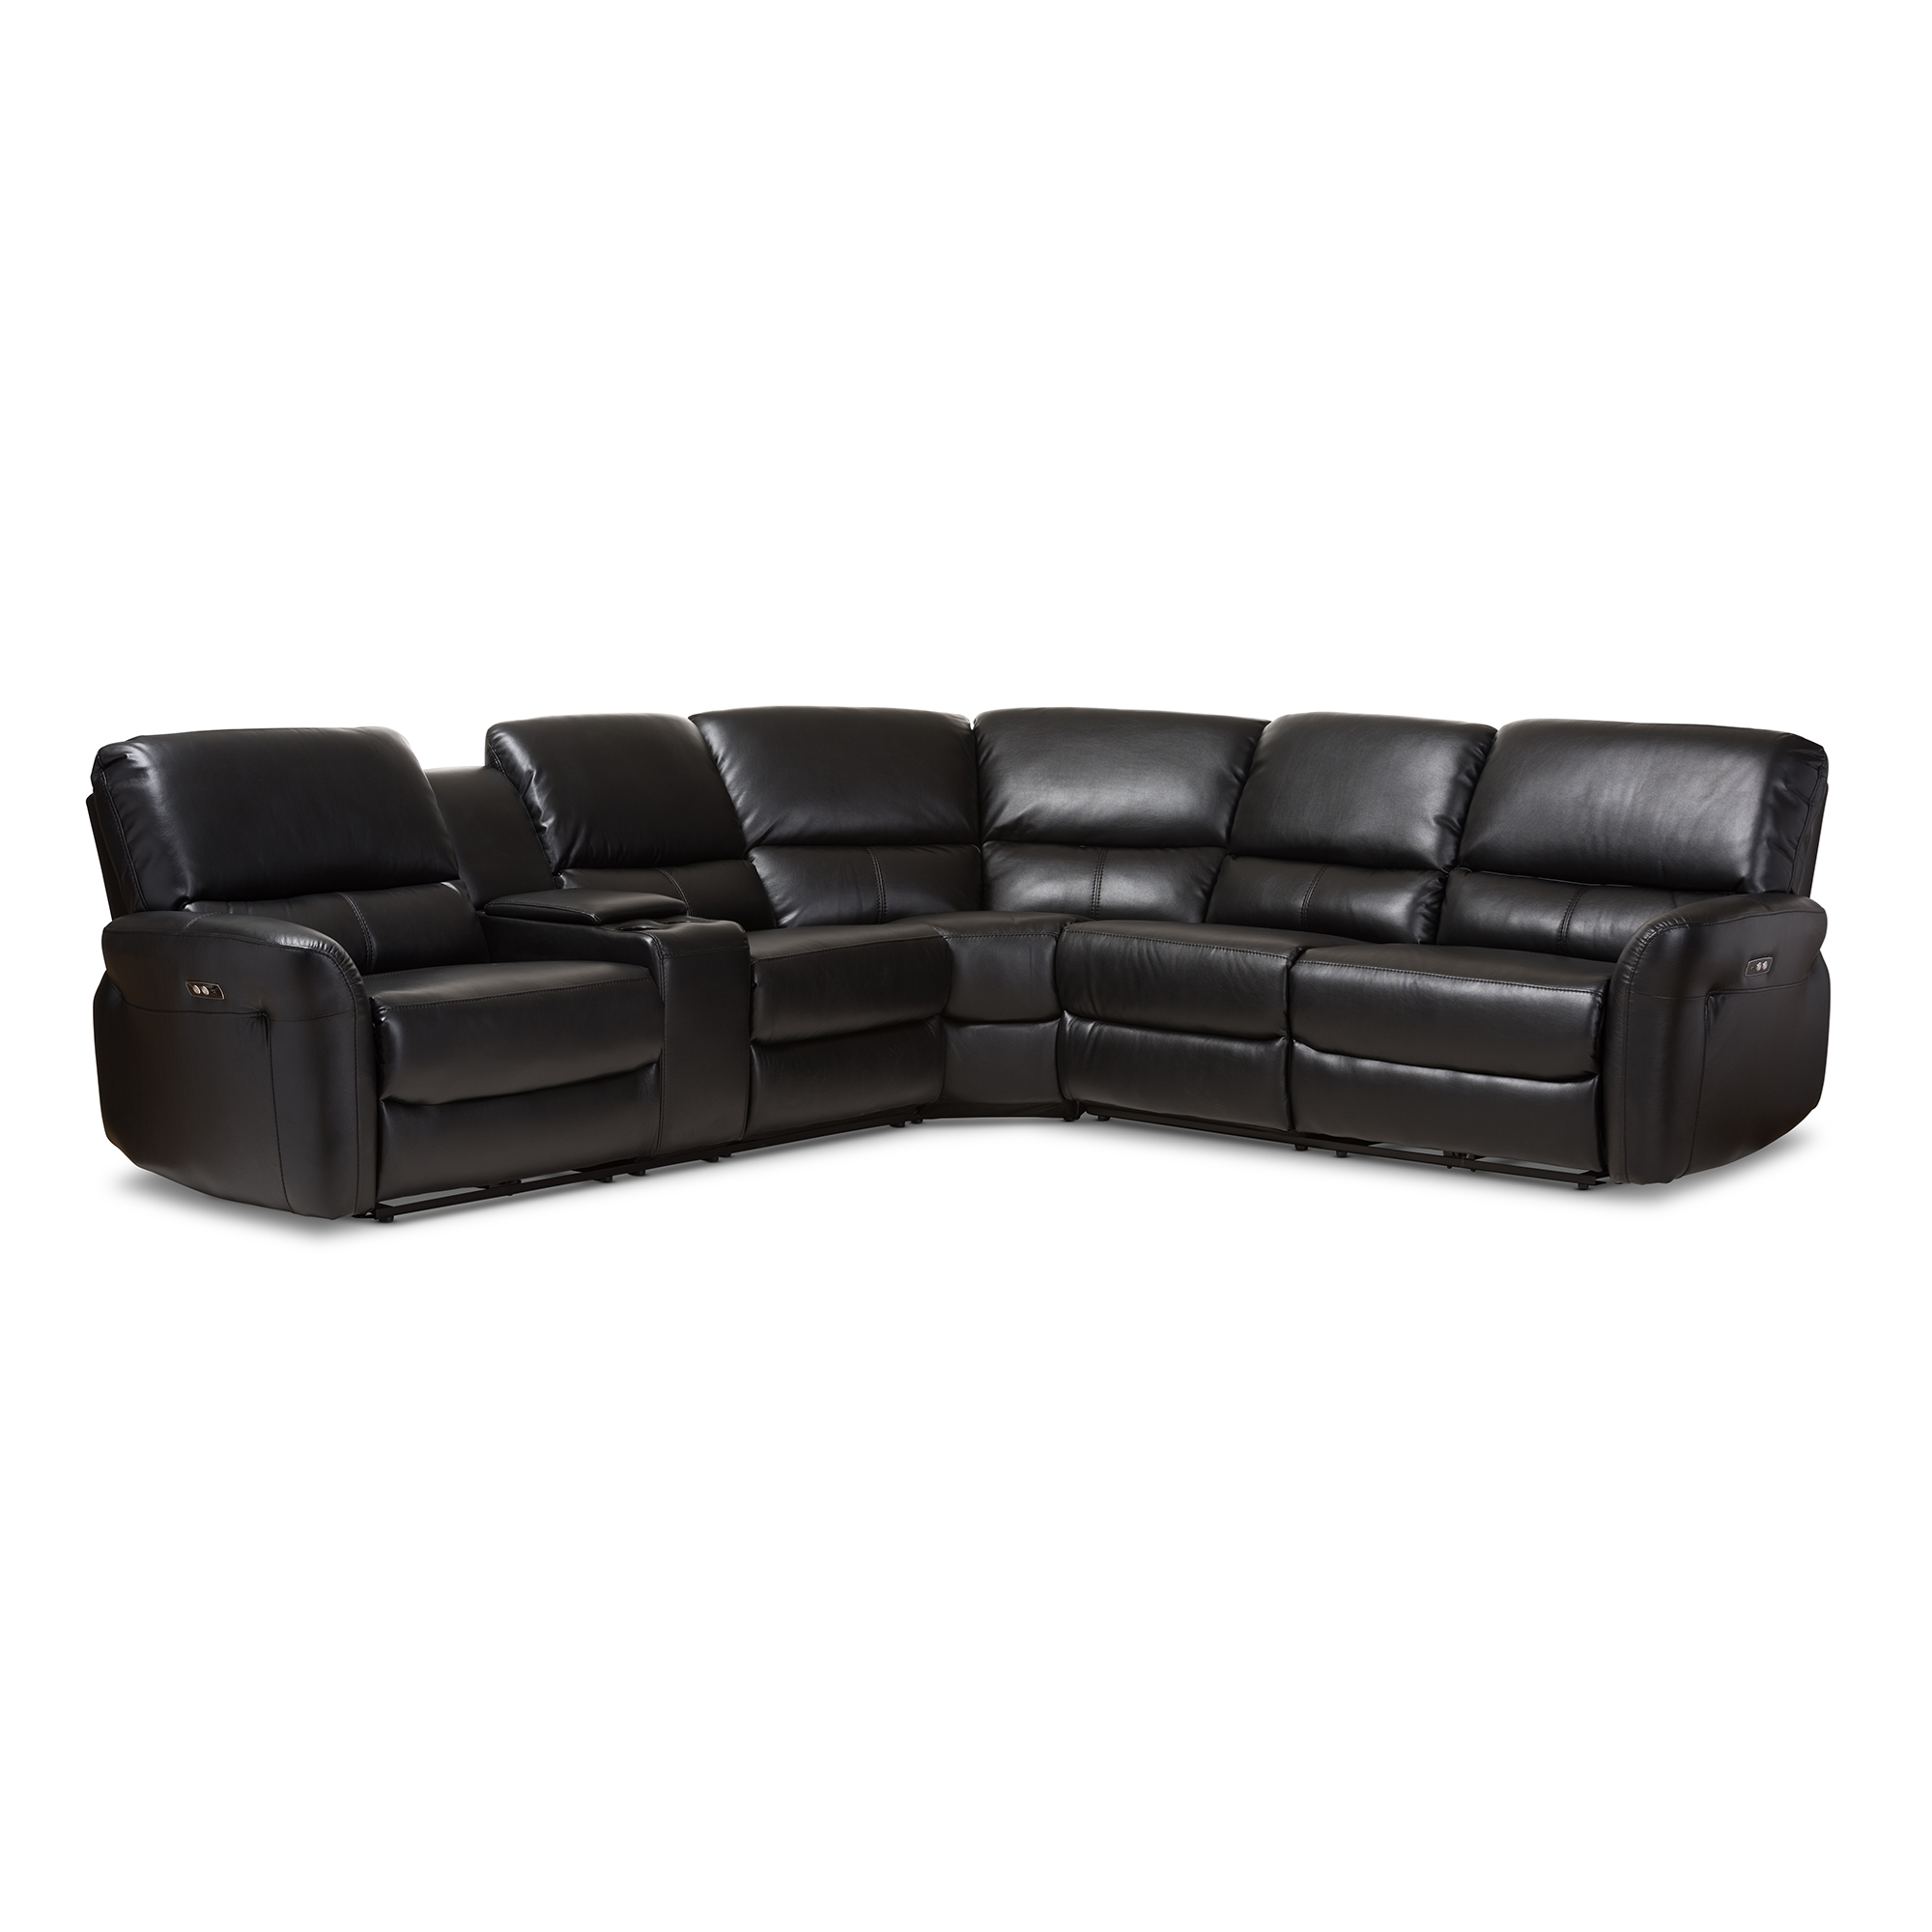 black modern couches. Baxton Studio Amaris Modern And Contemporary Black Bonded Leather 5-Piece Power Reclining Sectional Sofa Couches R